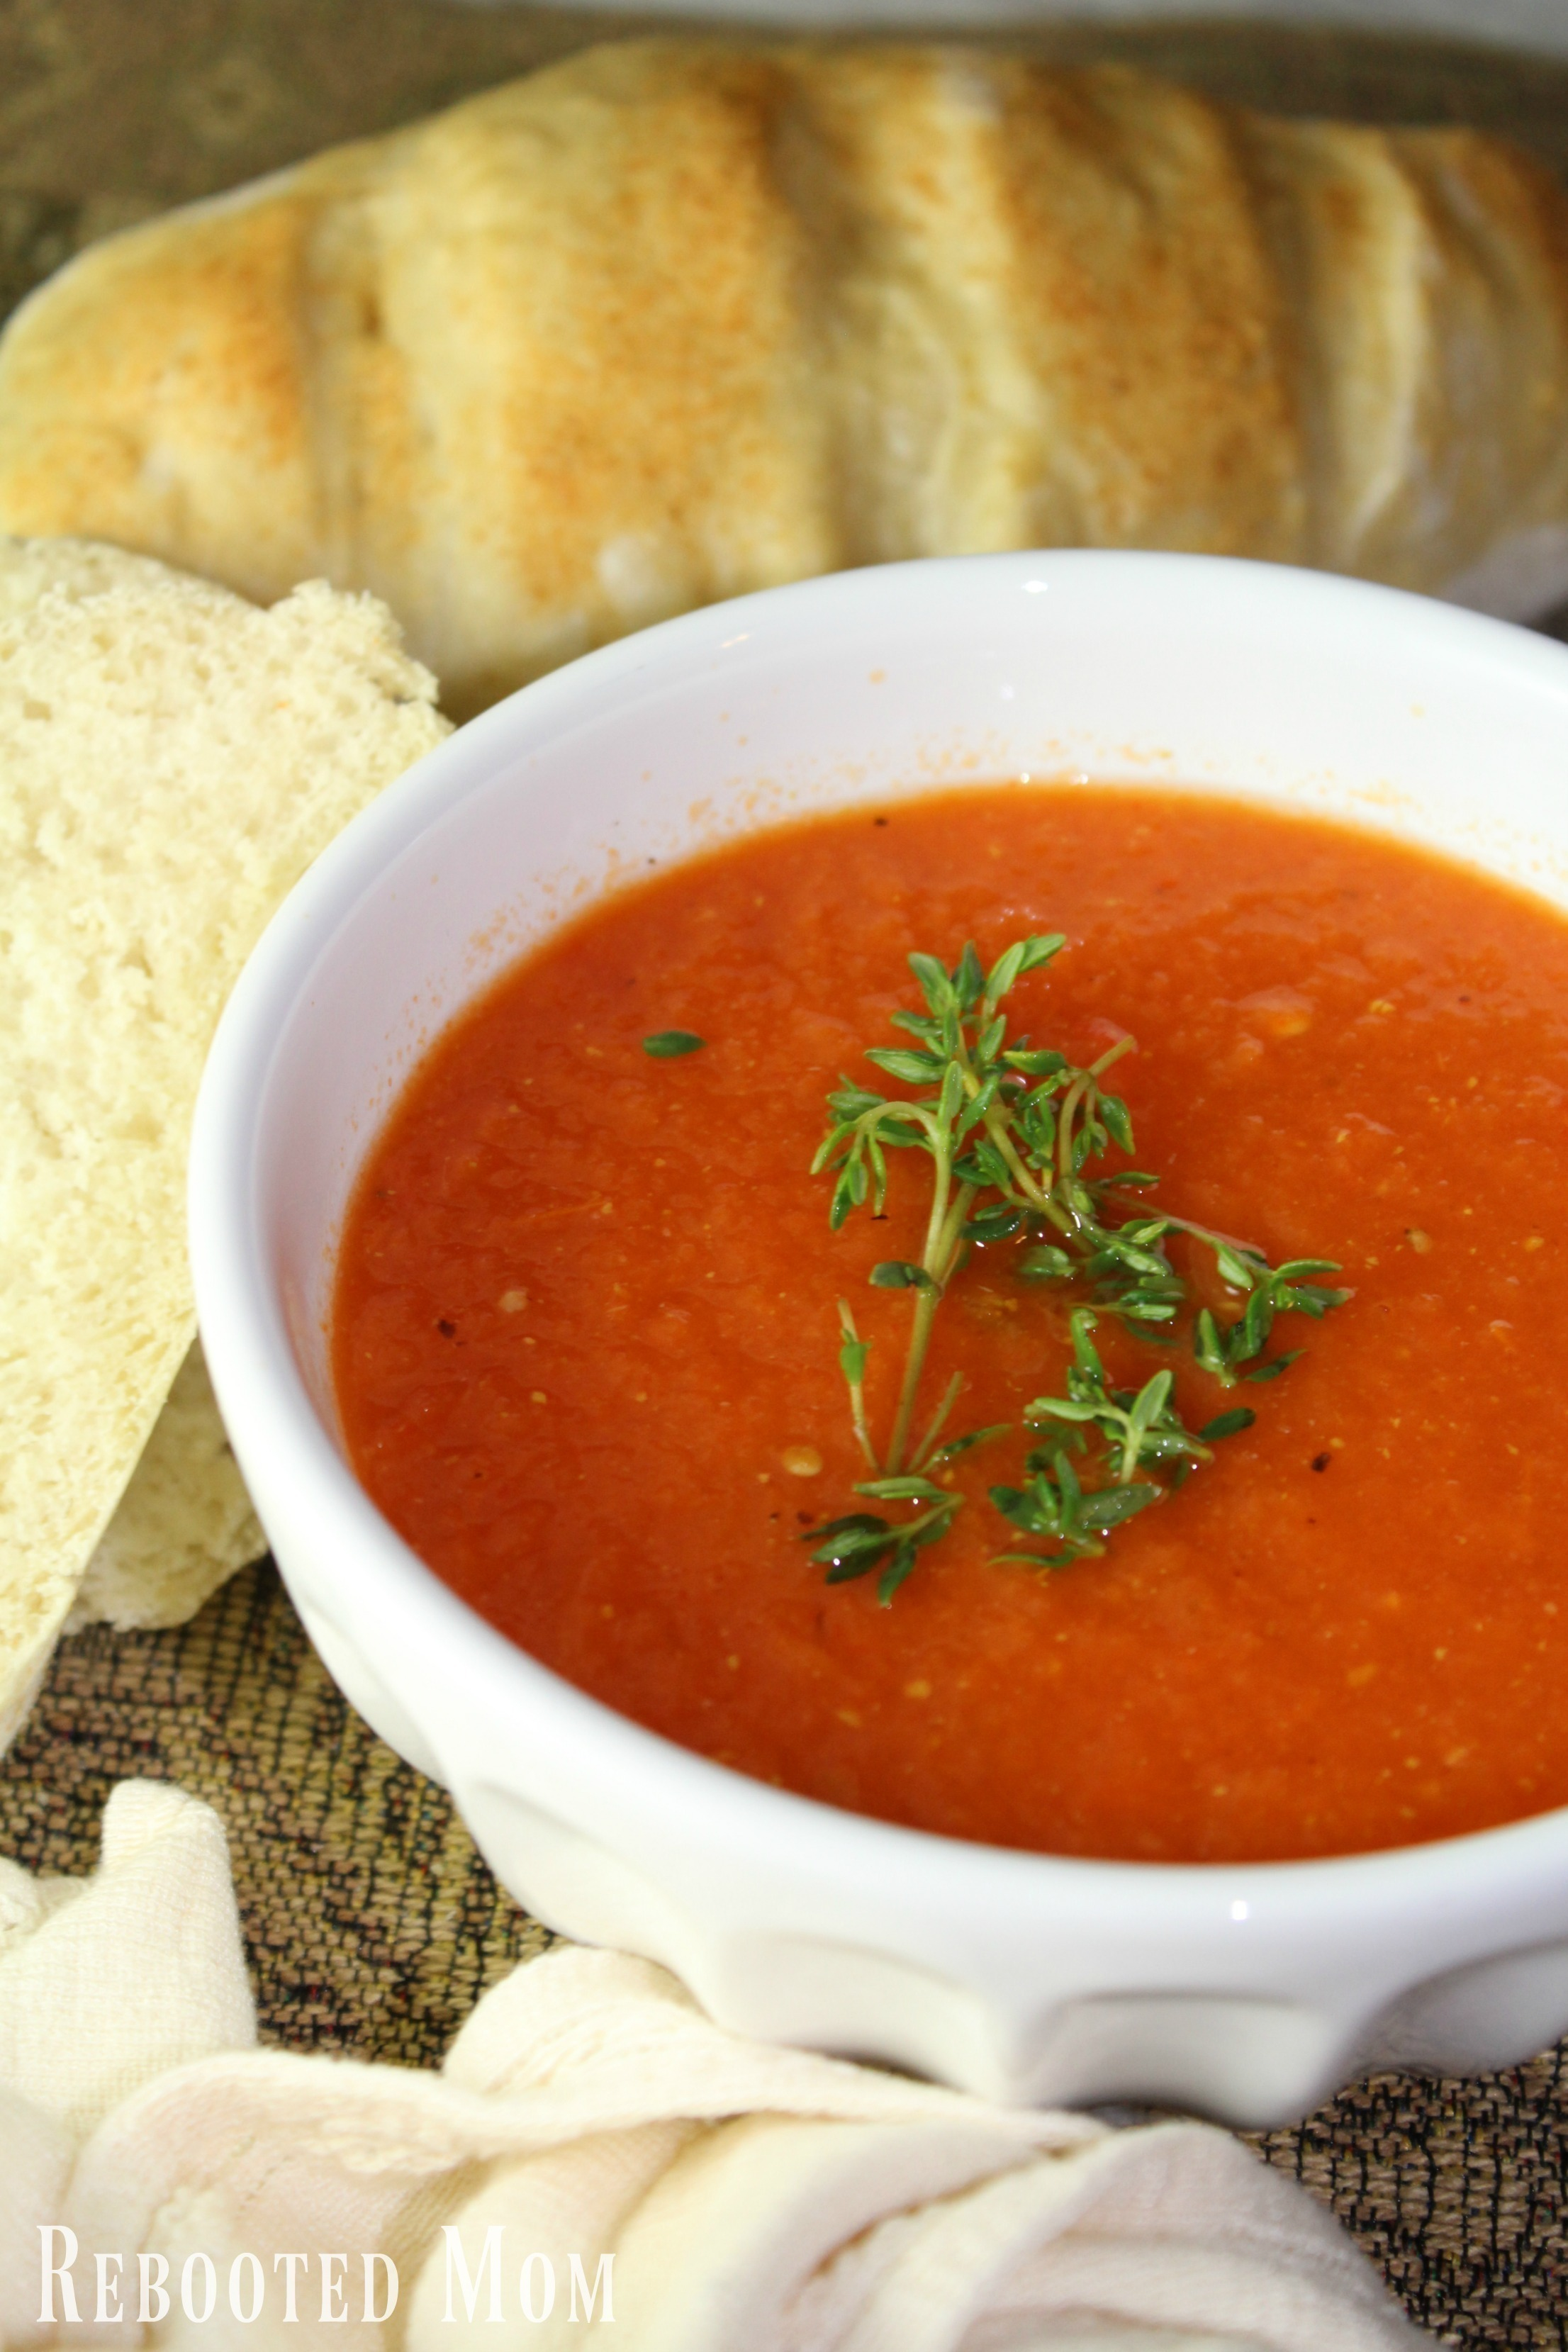 A simple recipe that comes roasted bell peppers and tomatoes with onions and garlic to make a simple & satisfying soup!